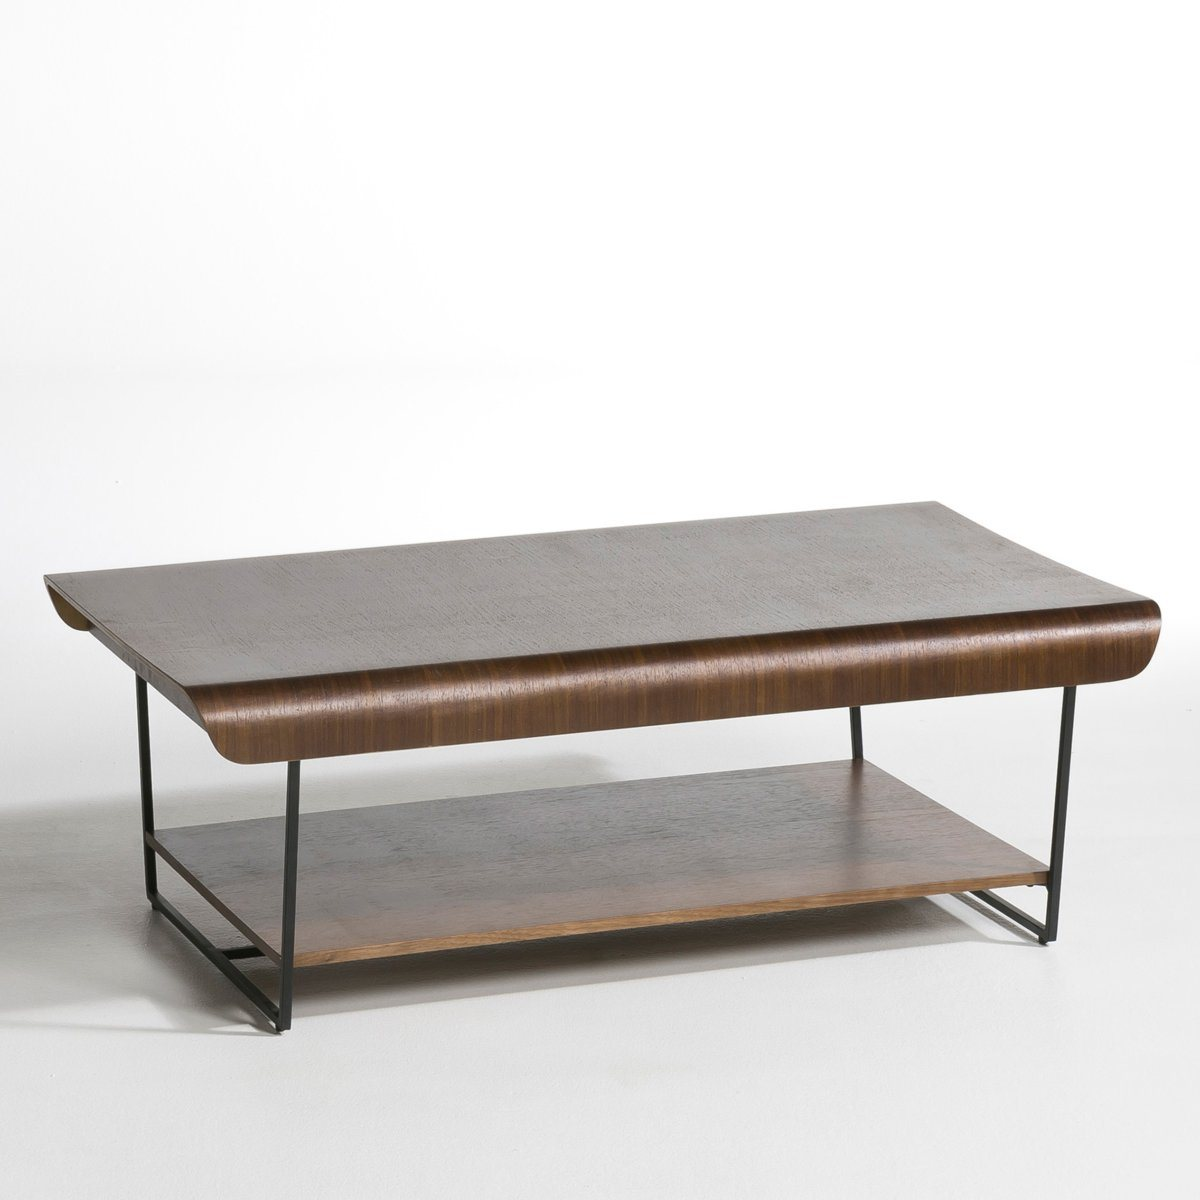 Table basse Bardi, design E. Gallina